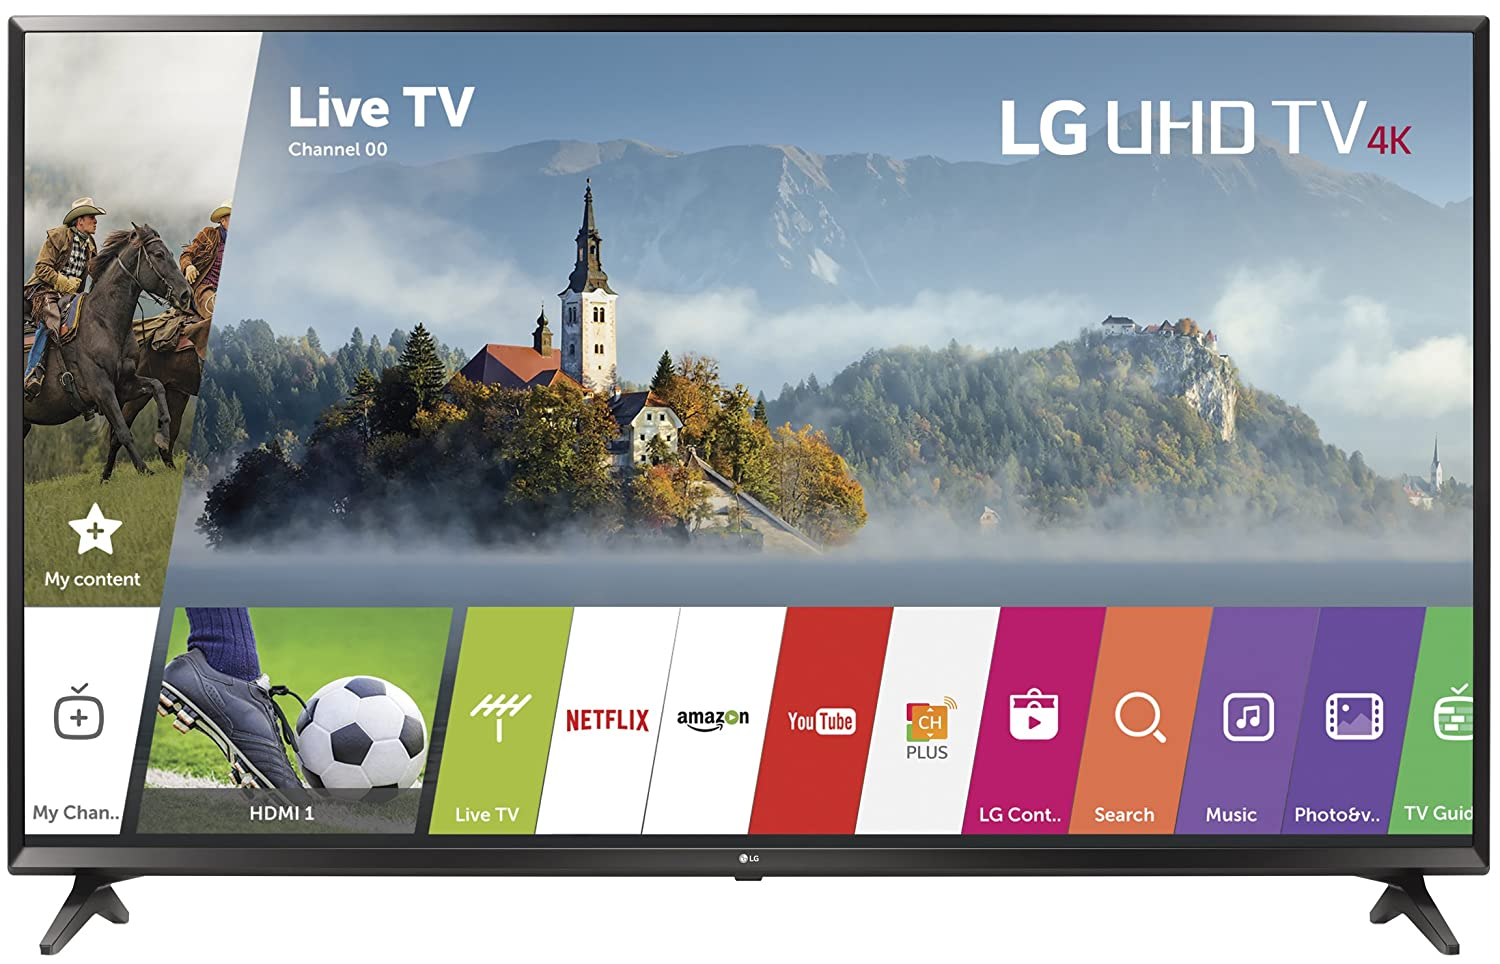 LG Electronics 55UJ6300-O 55-Inch 4K Black Friday deal 2019